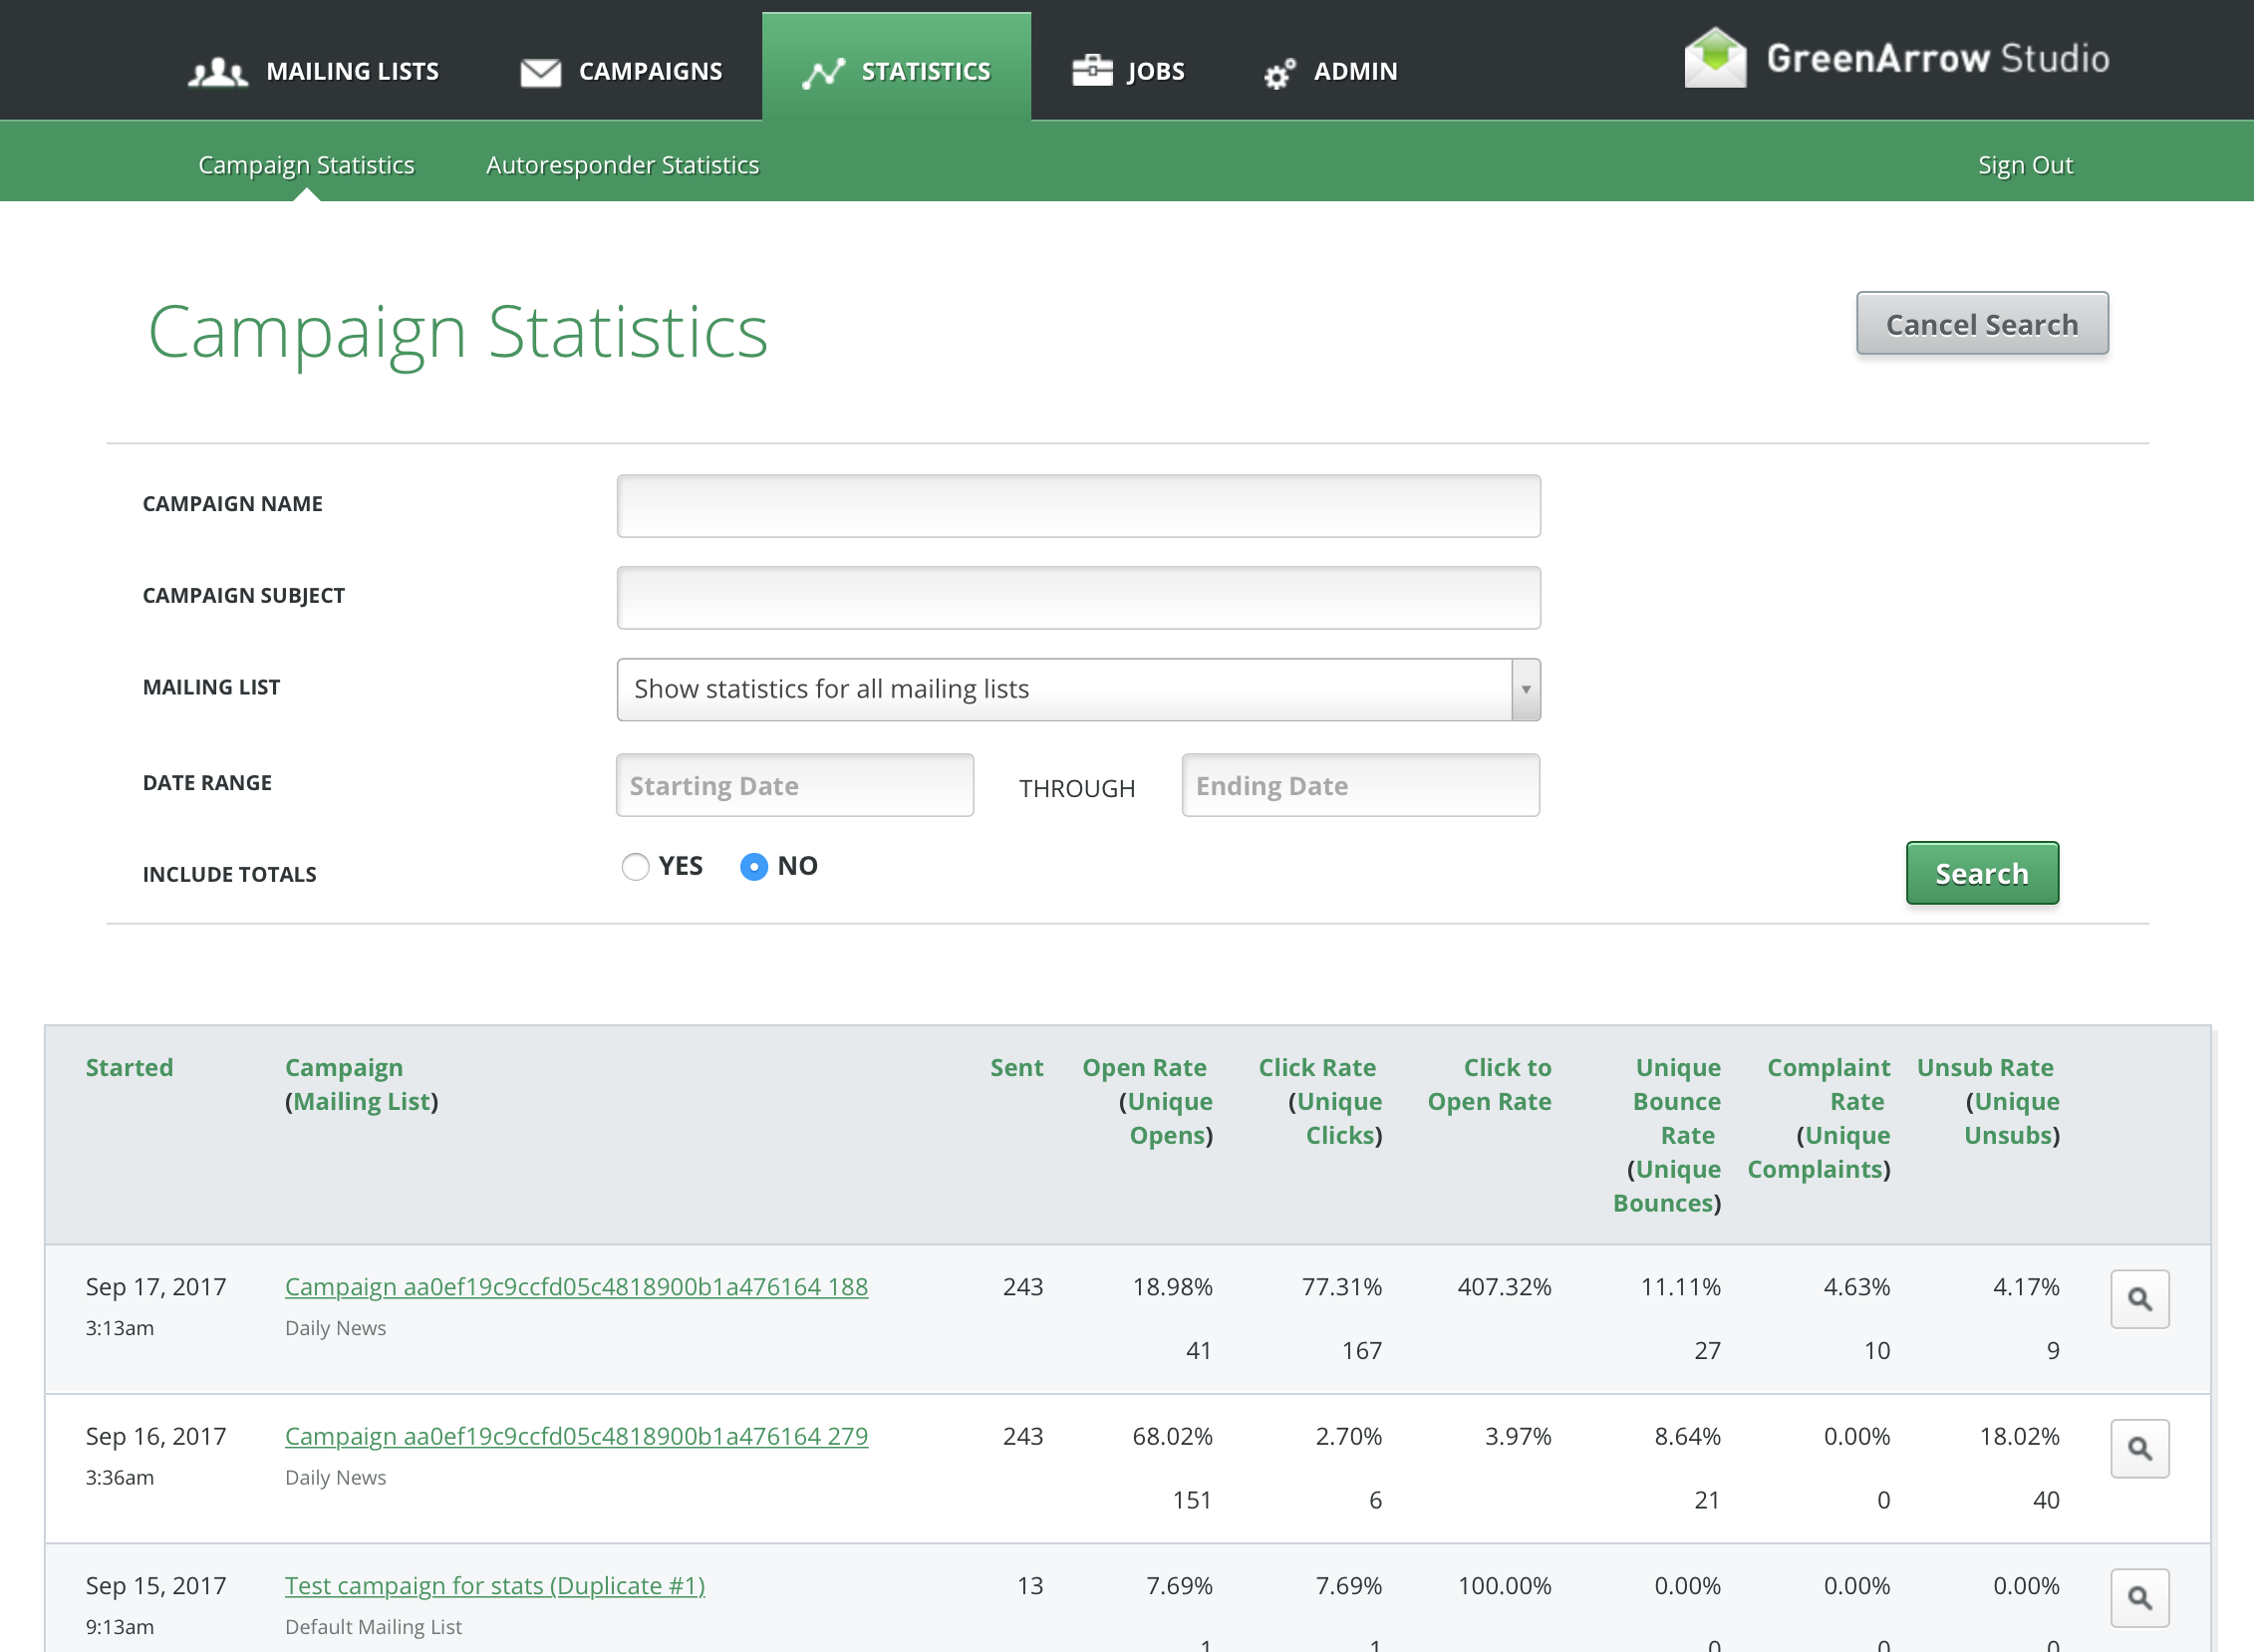 campaign-statistics-search-open.png